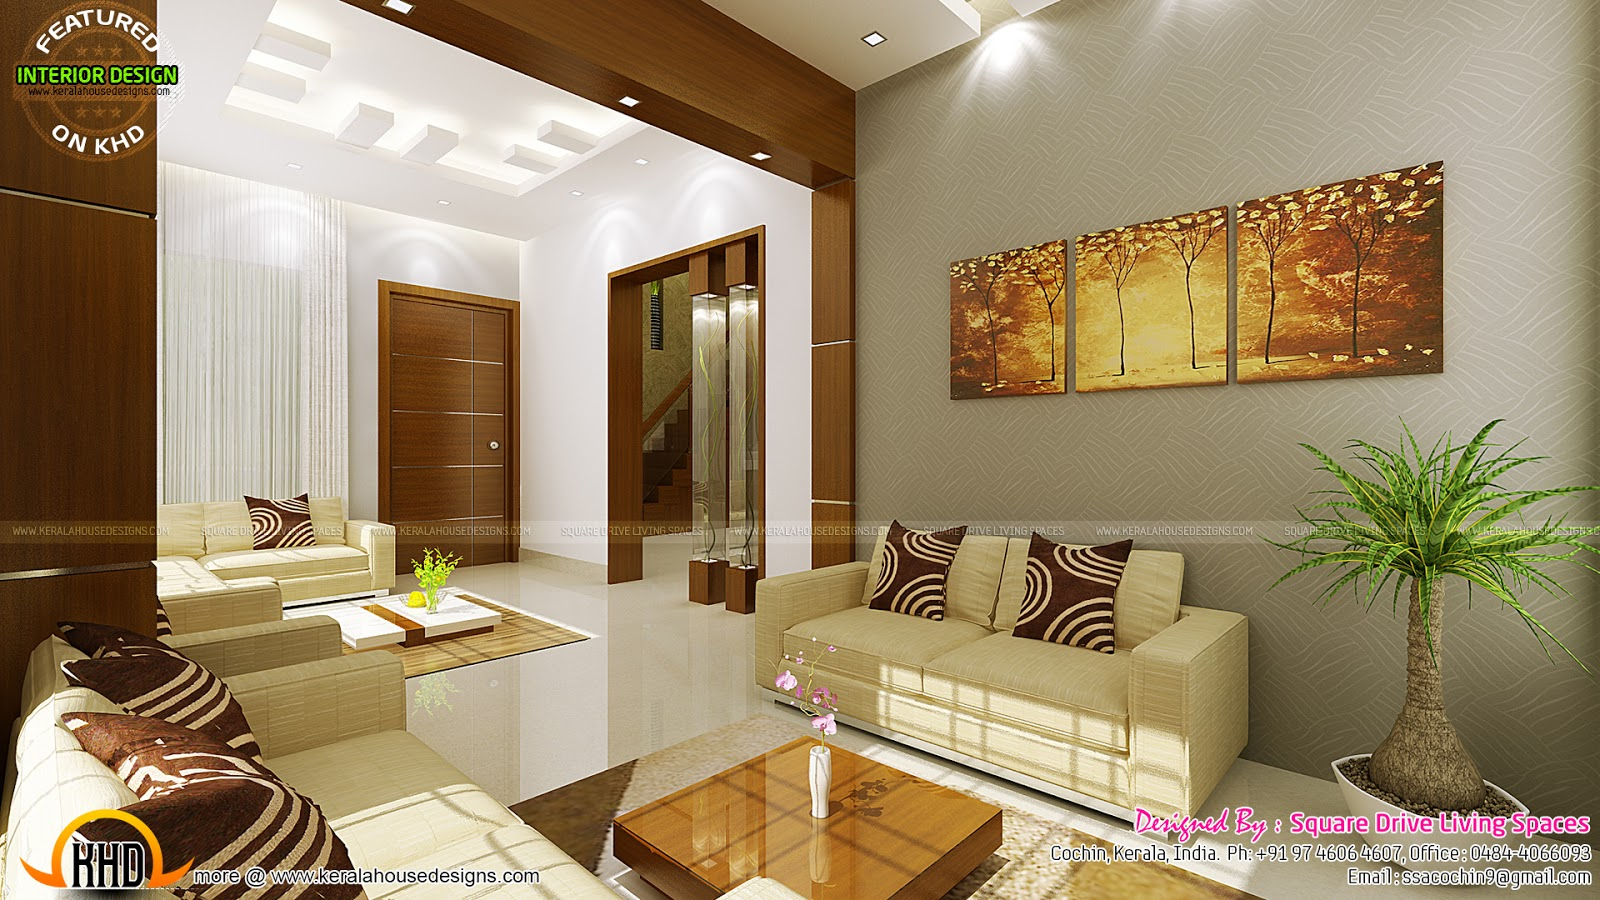 Contemporary kitchen dining and living room kerala home for House and home interior design